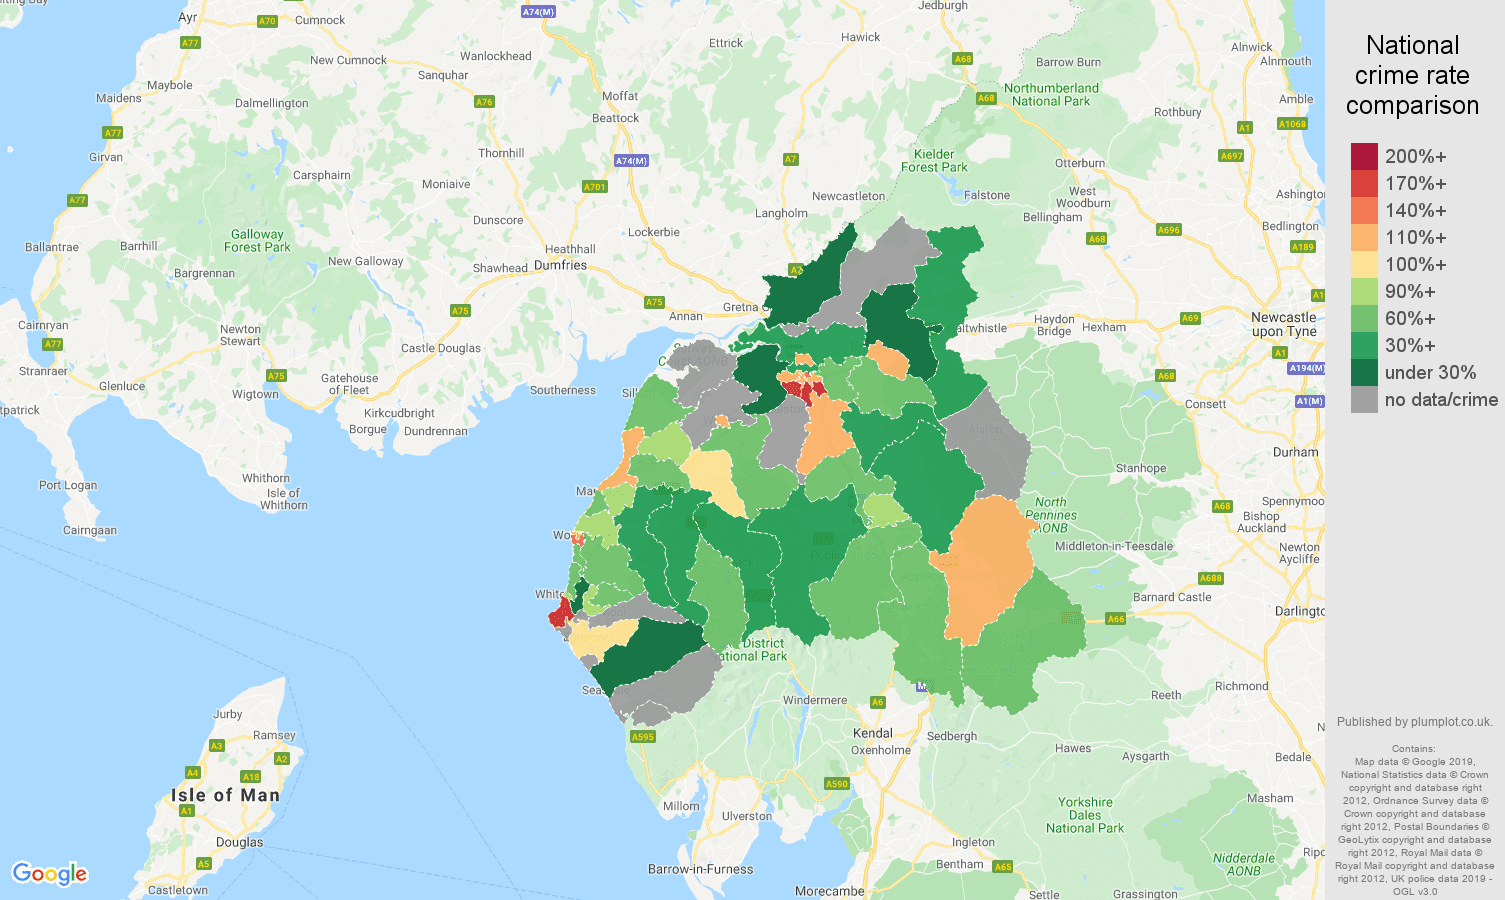 Carlisle other crime rate comparison map